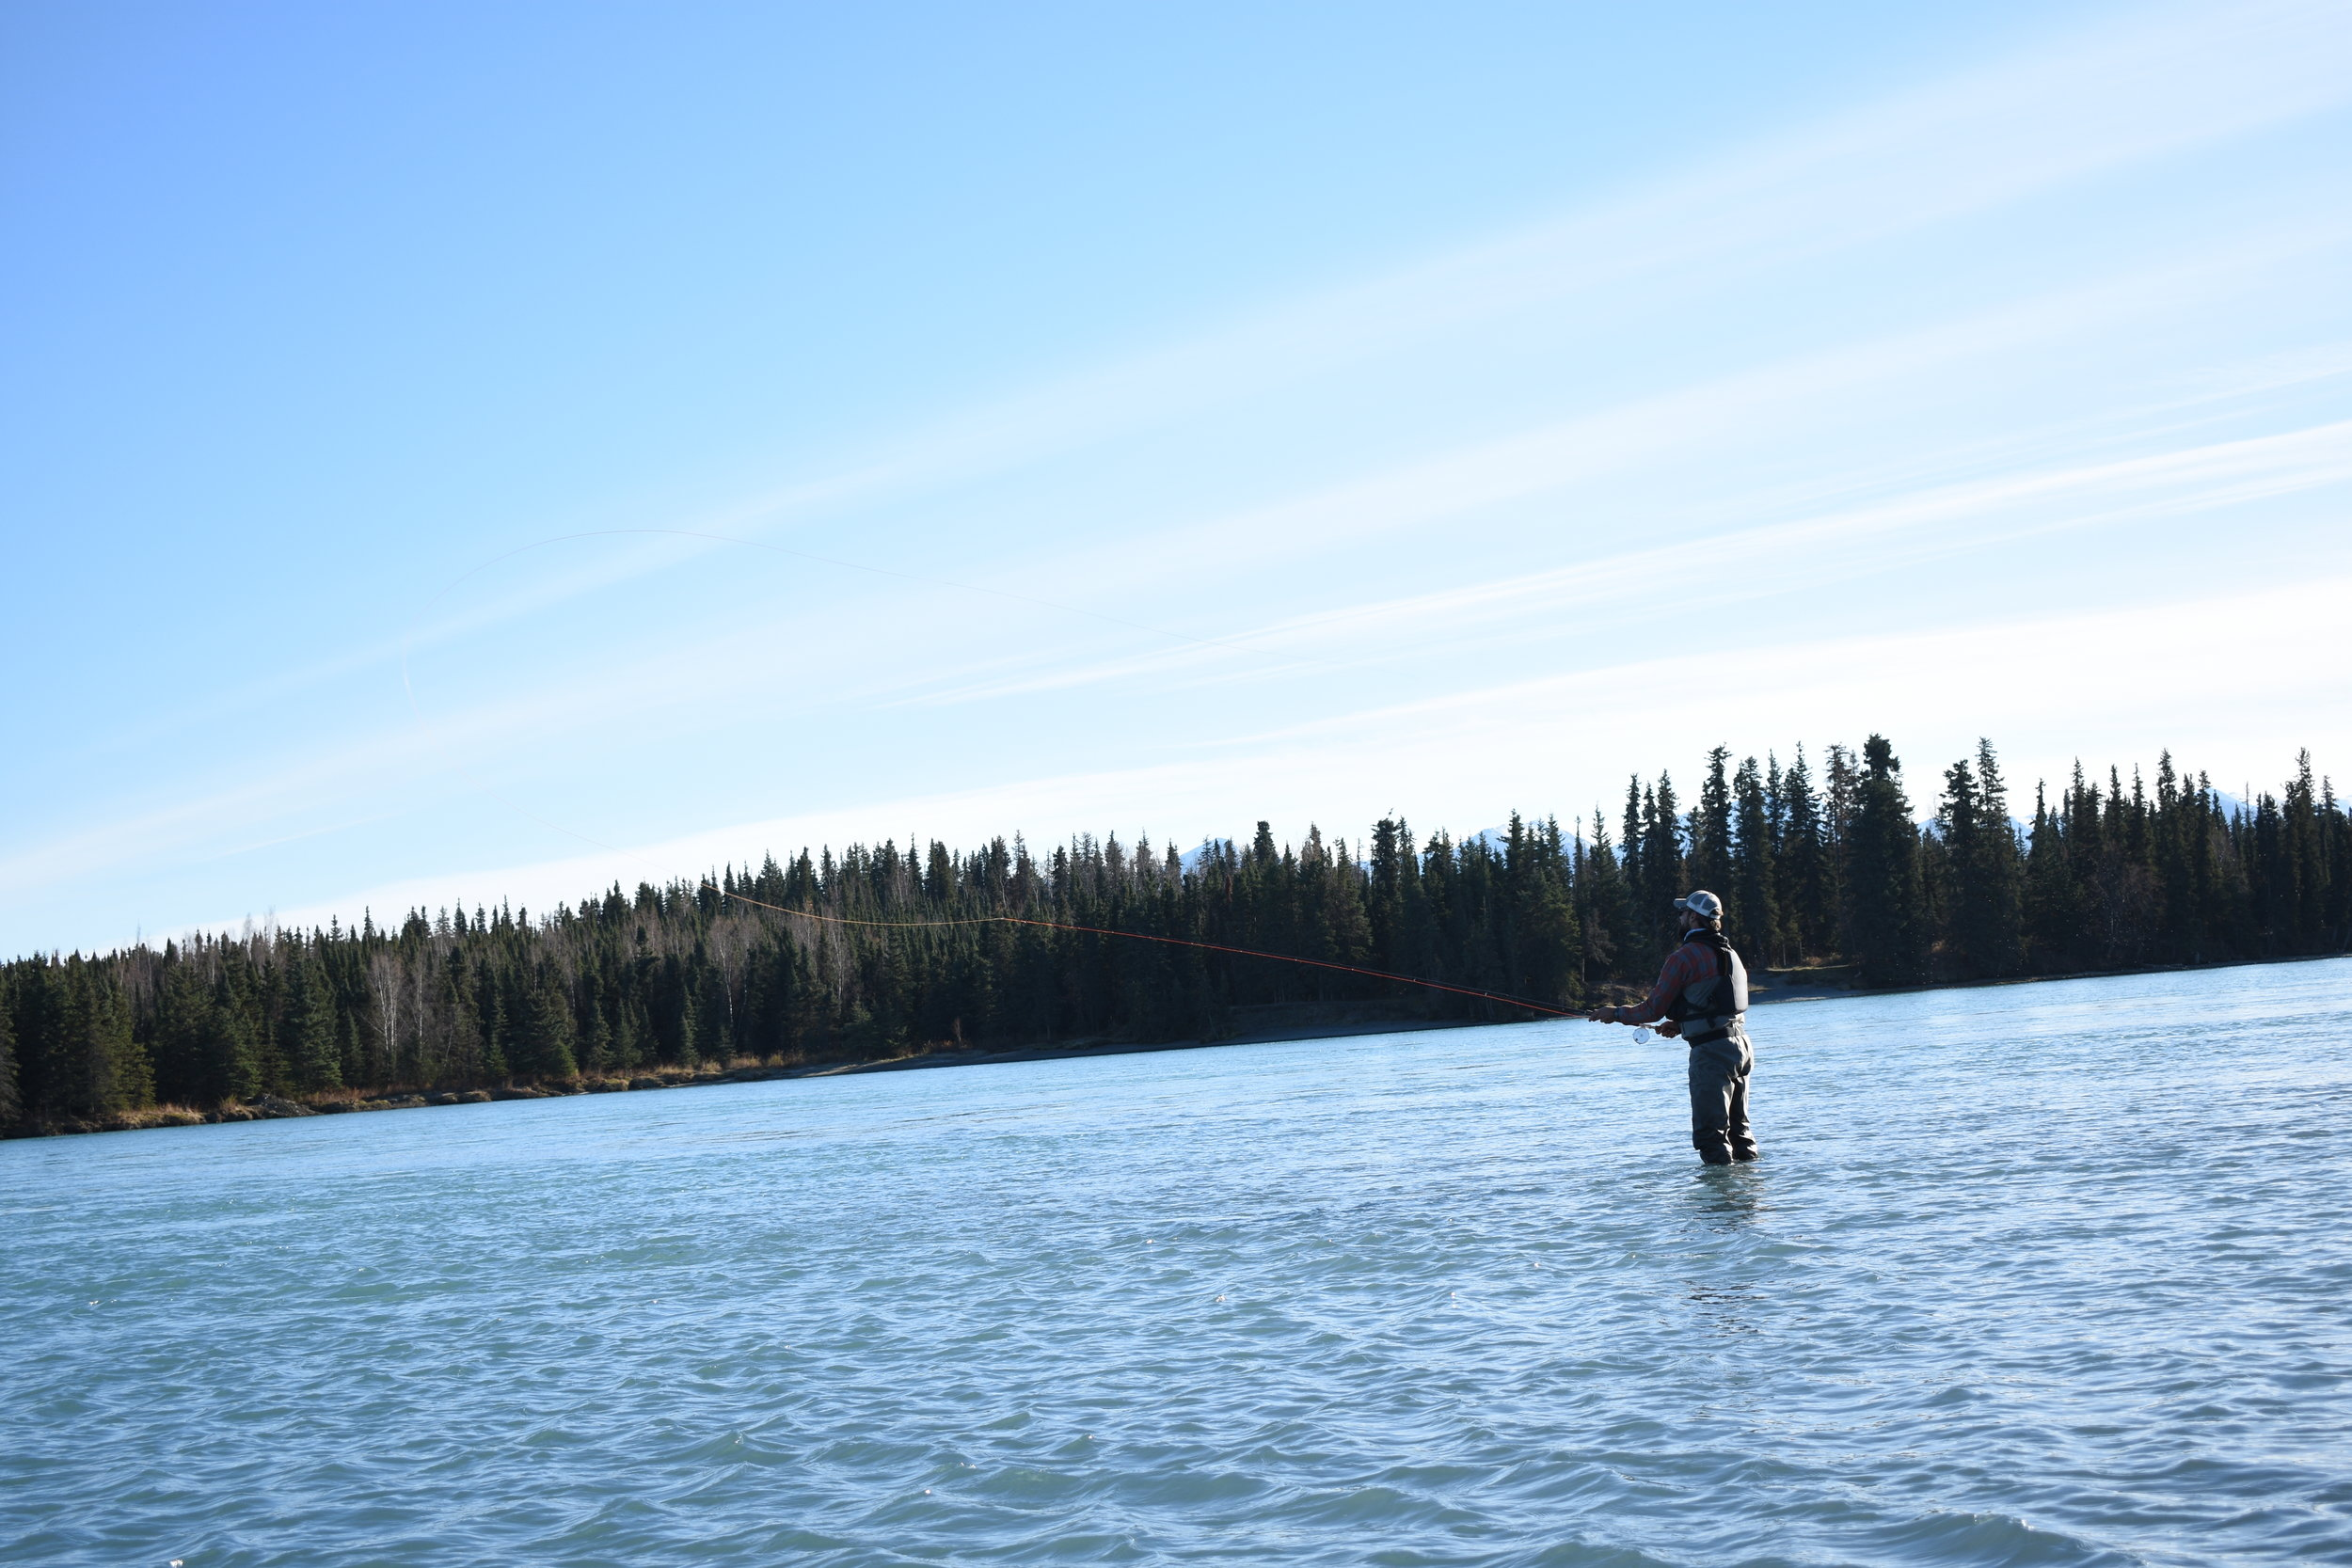 Enjoying the solitude of spey casting for    Rainbow Trout    on the    Middle Kenai River   .